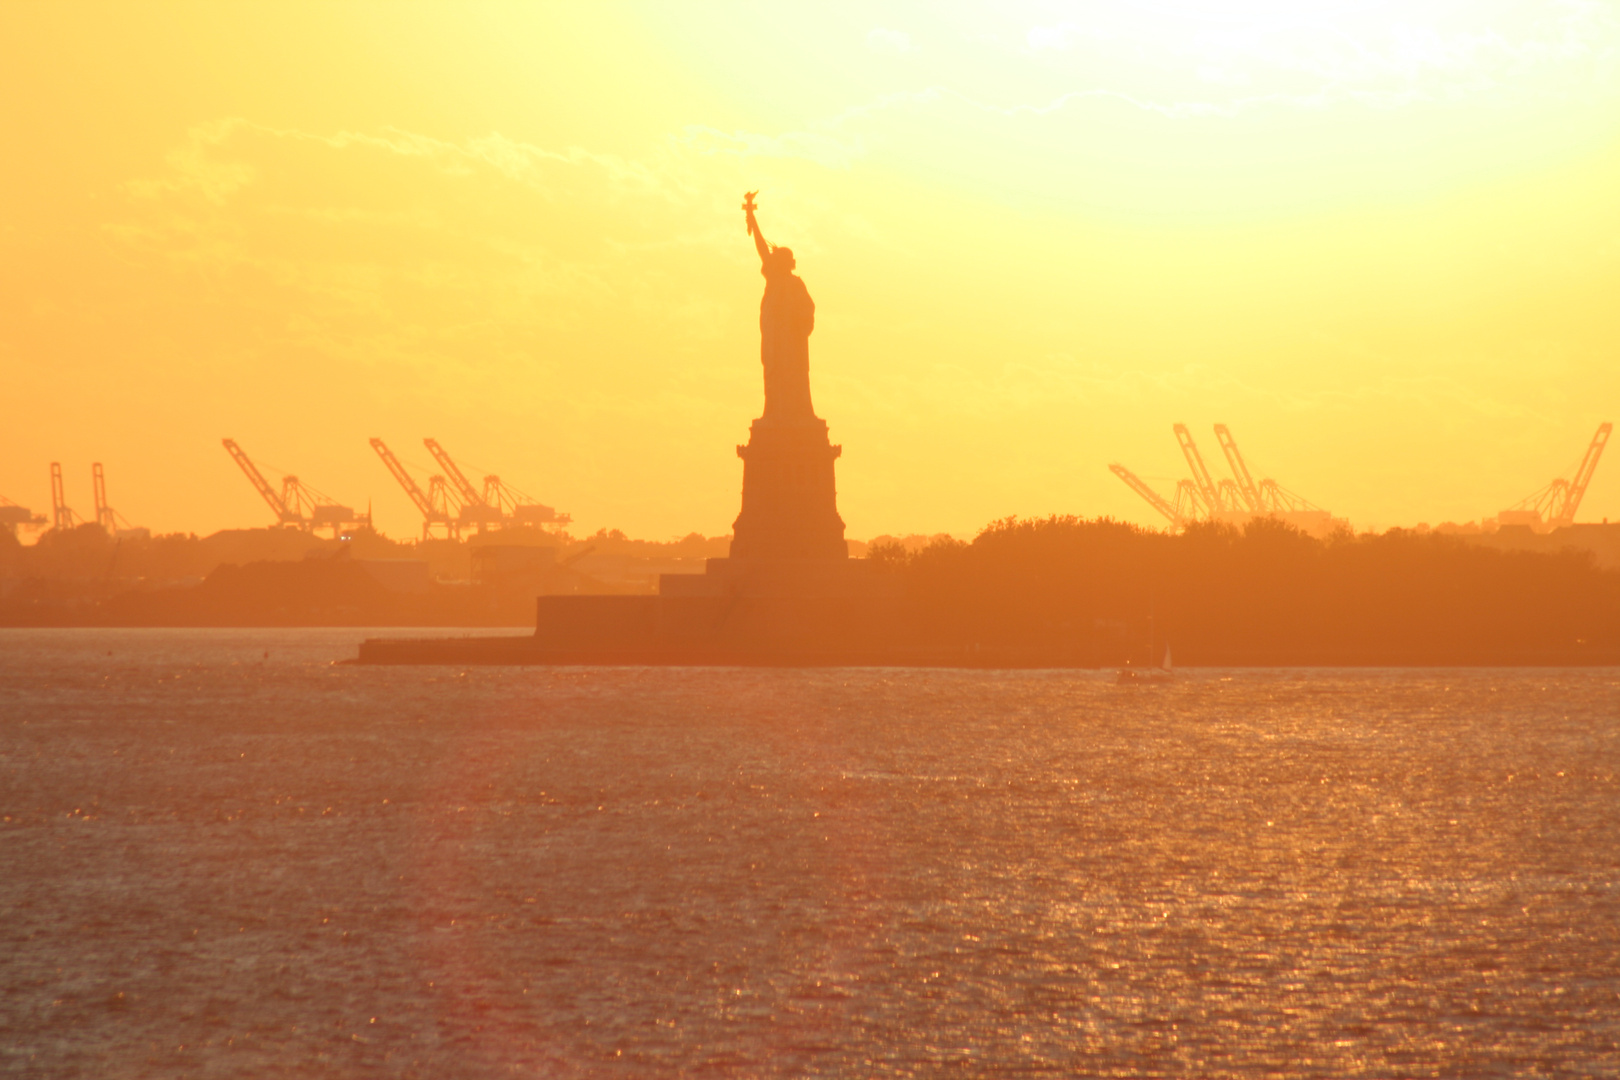 Insel Liberty Island -Statue of Liberty in New York-